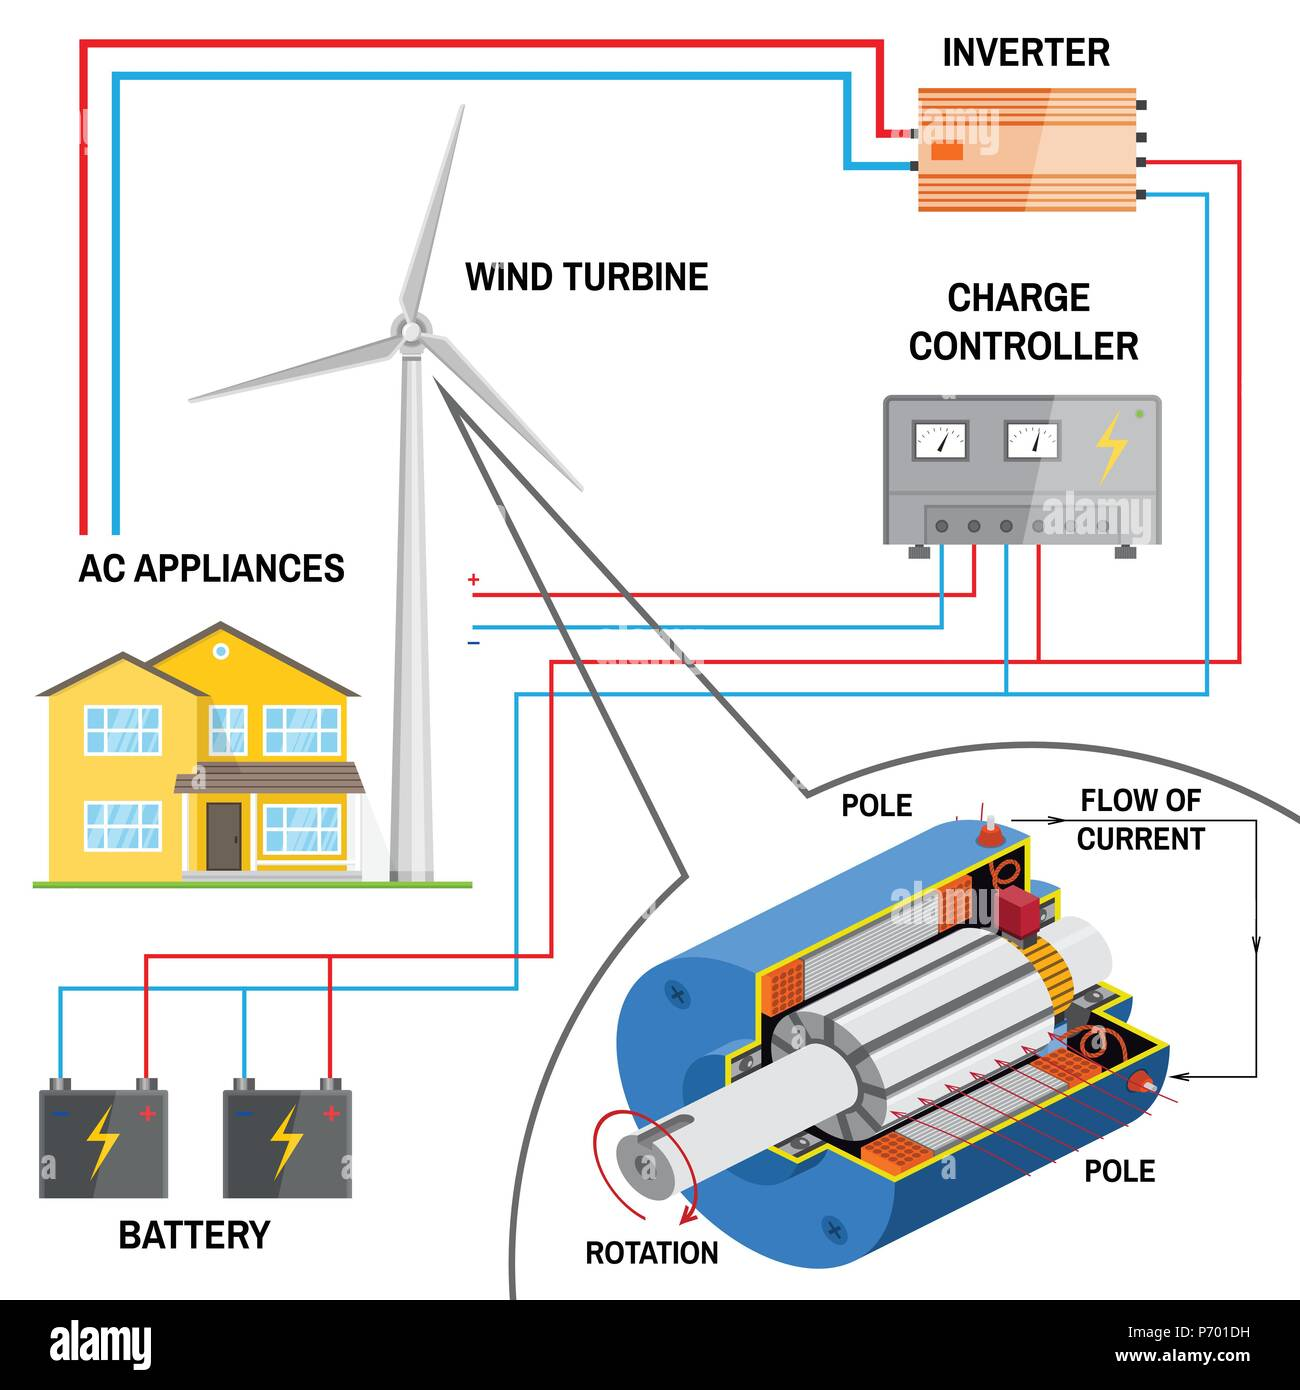 hight resolution of wind turbine system for home renewable energy concept simplified diagram of an off grid system dc generator battery charge controller and invert